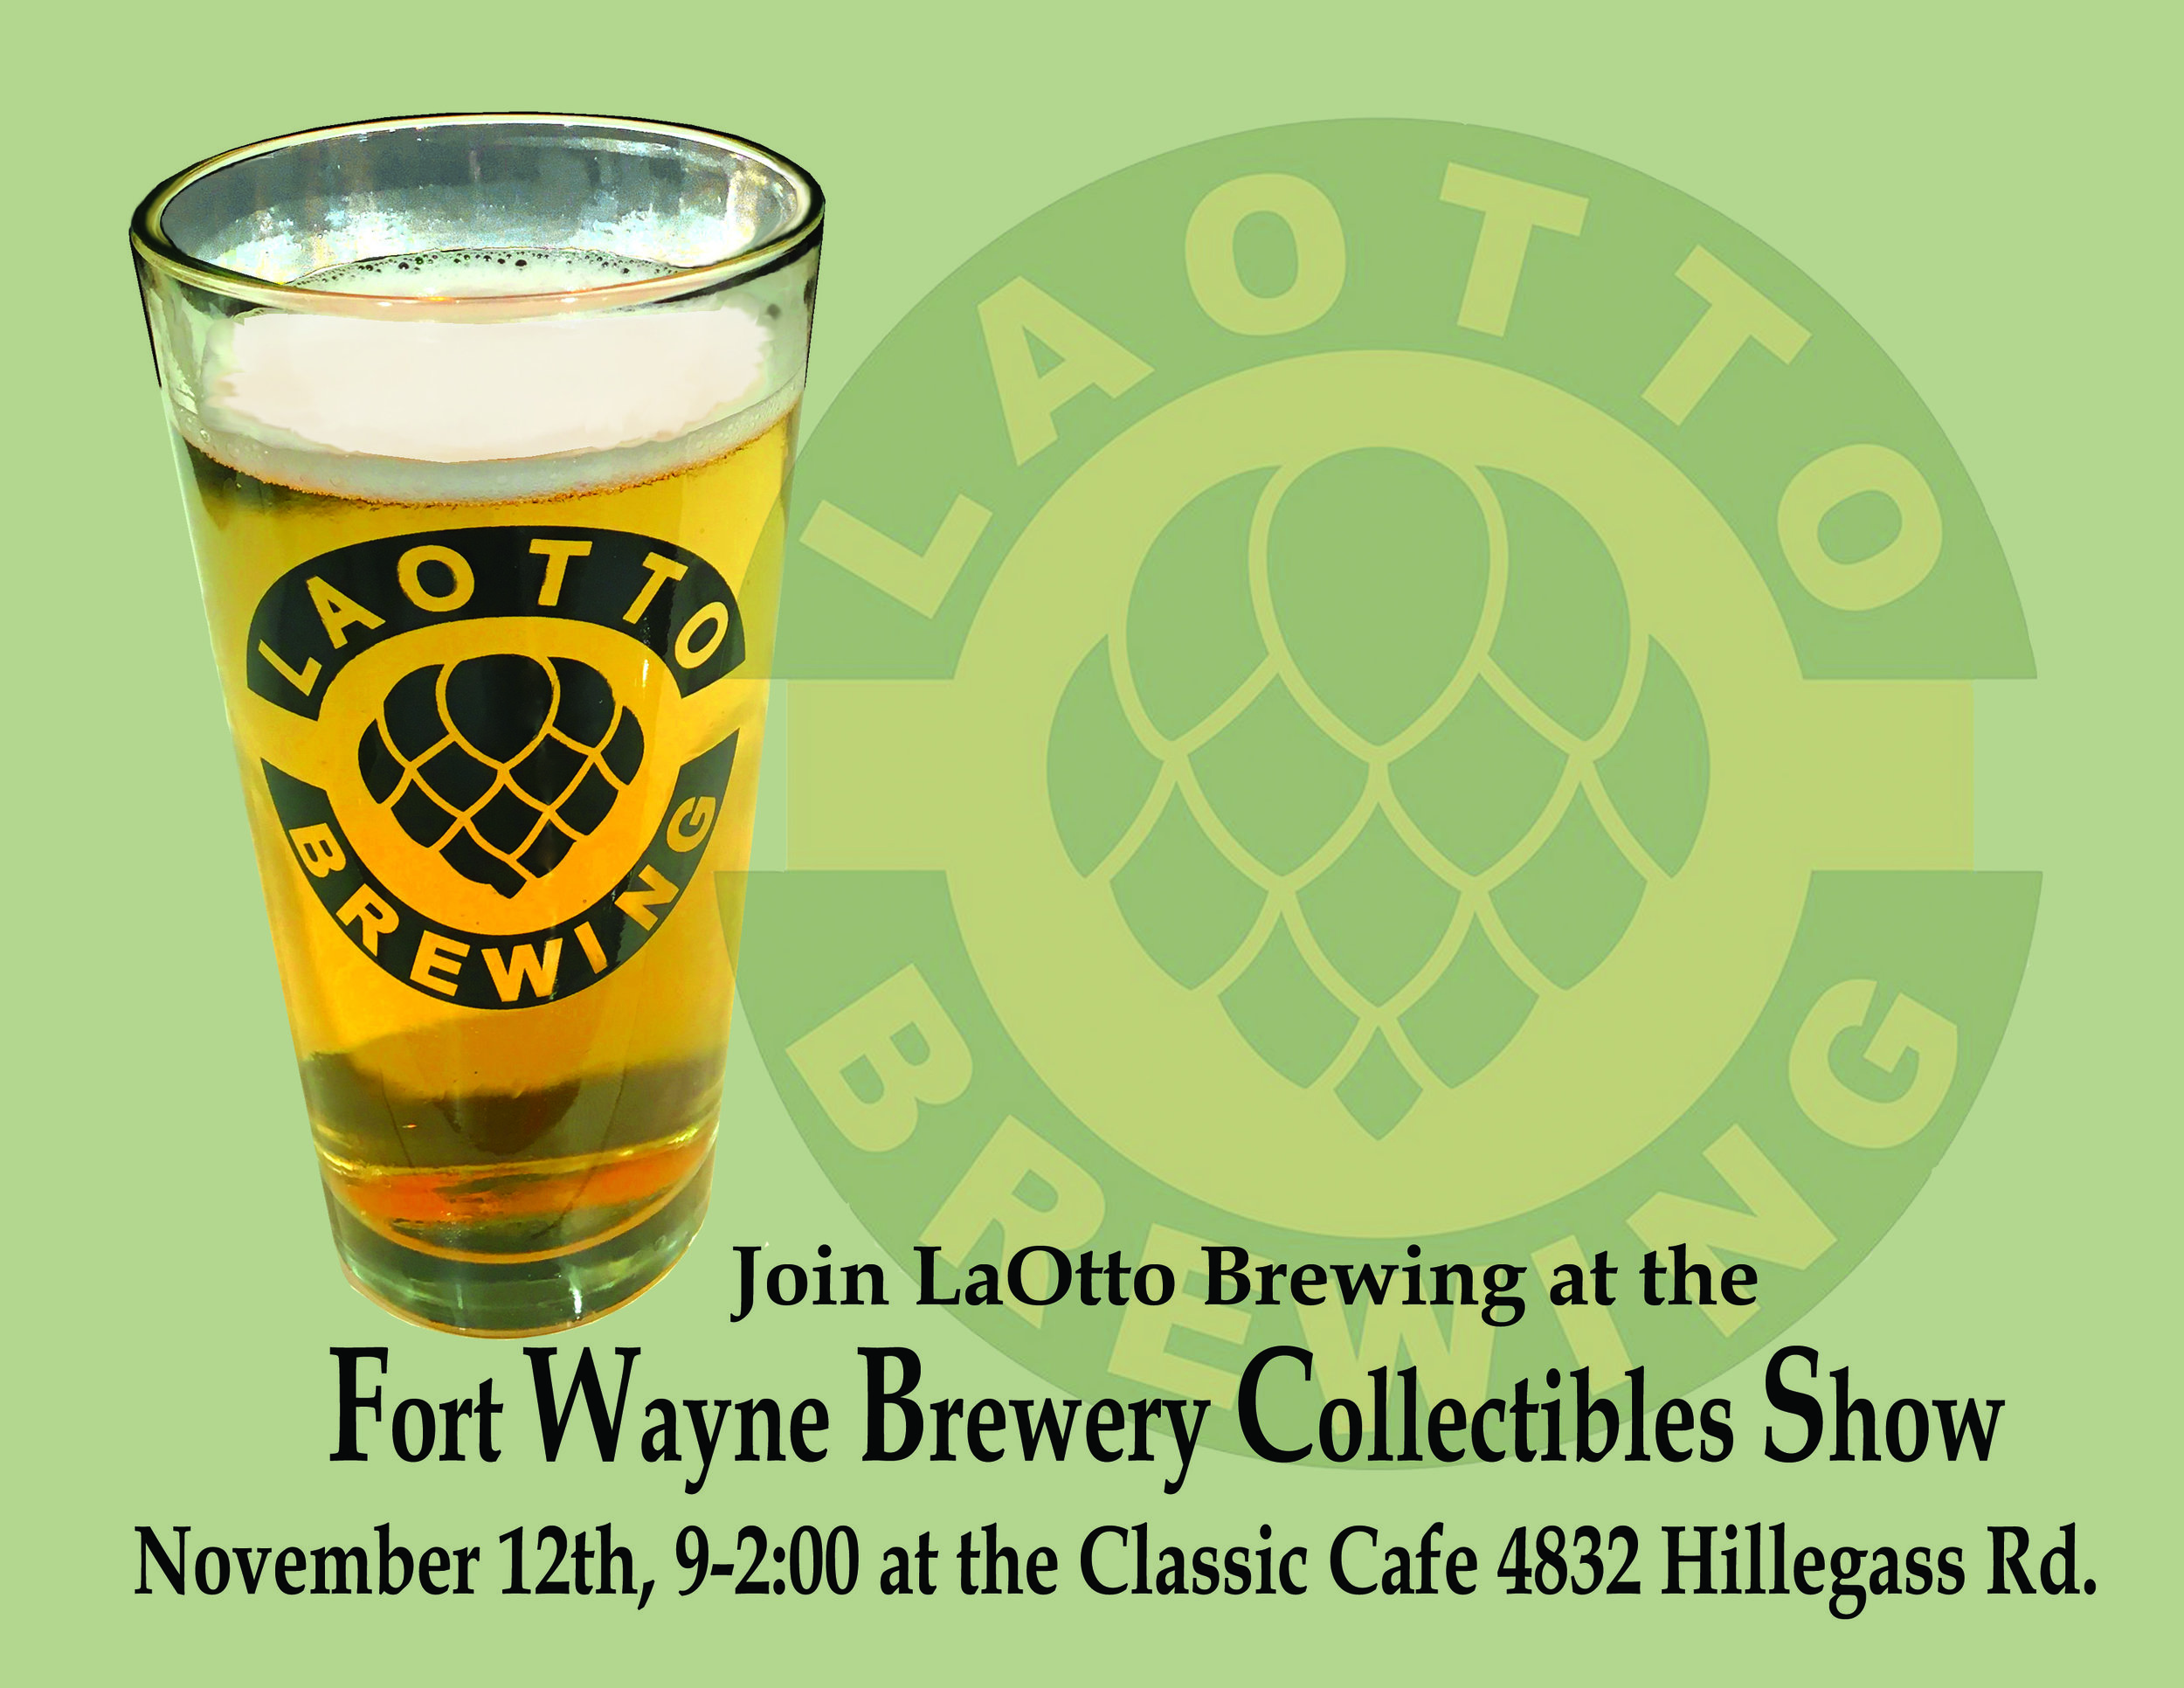 2016 Fort Wayne Brewery Collectibles Show25.jpg